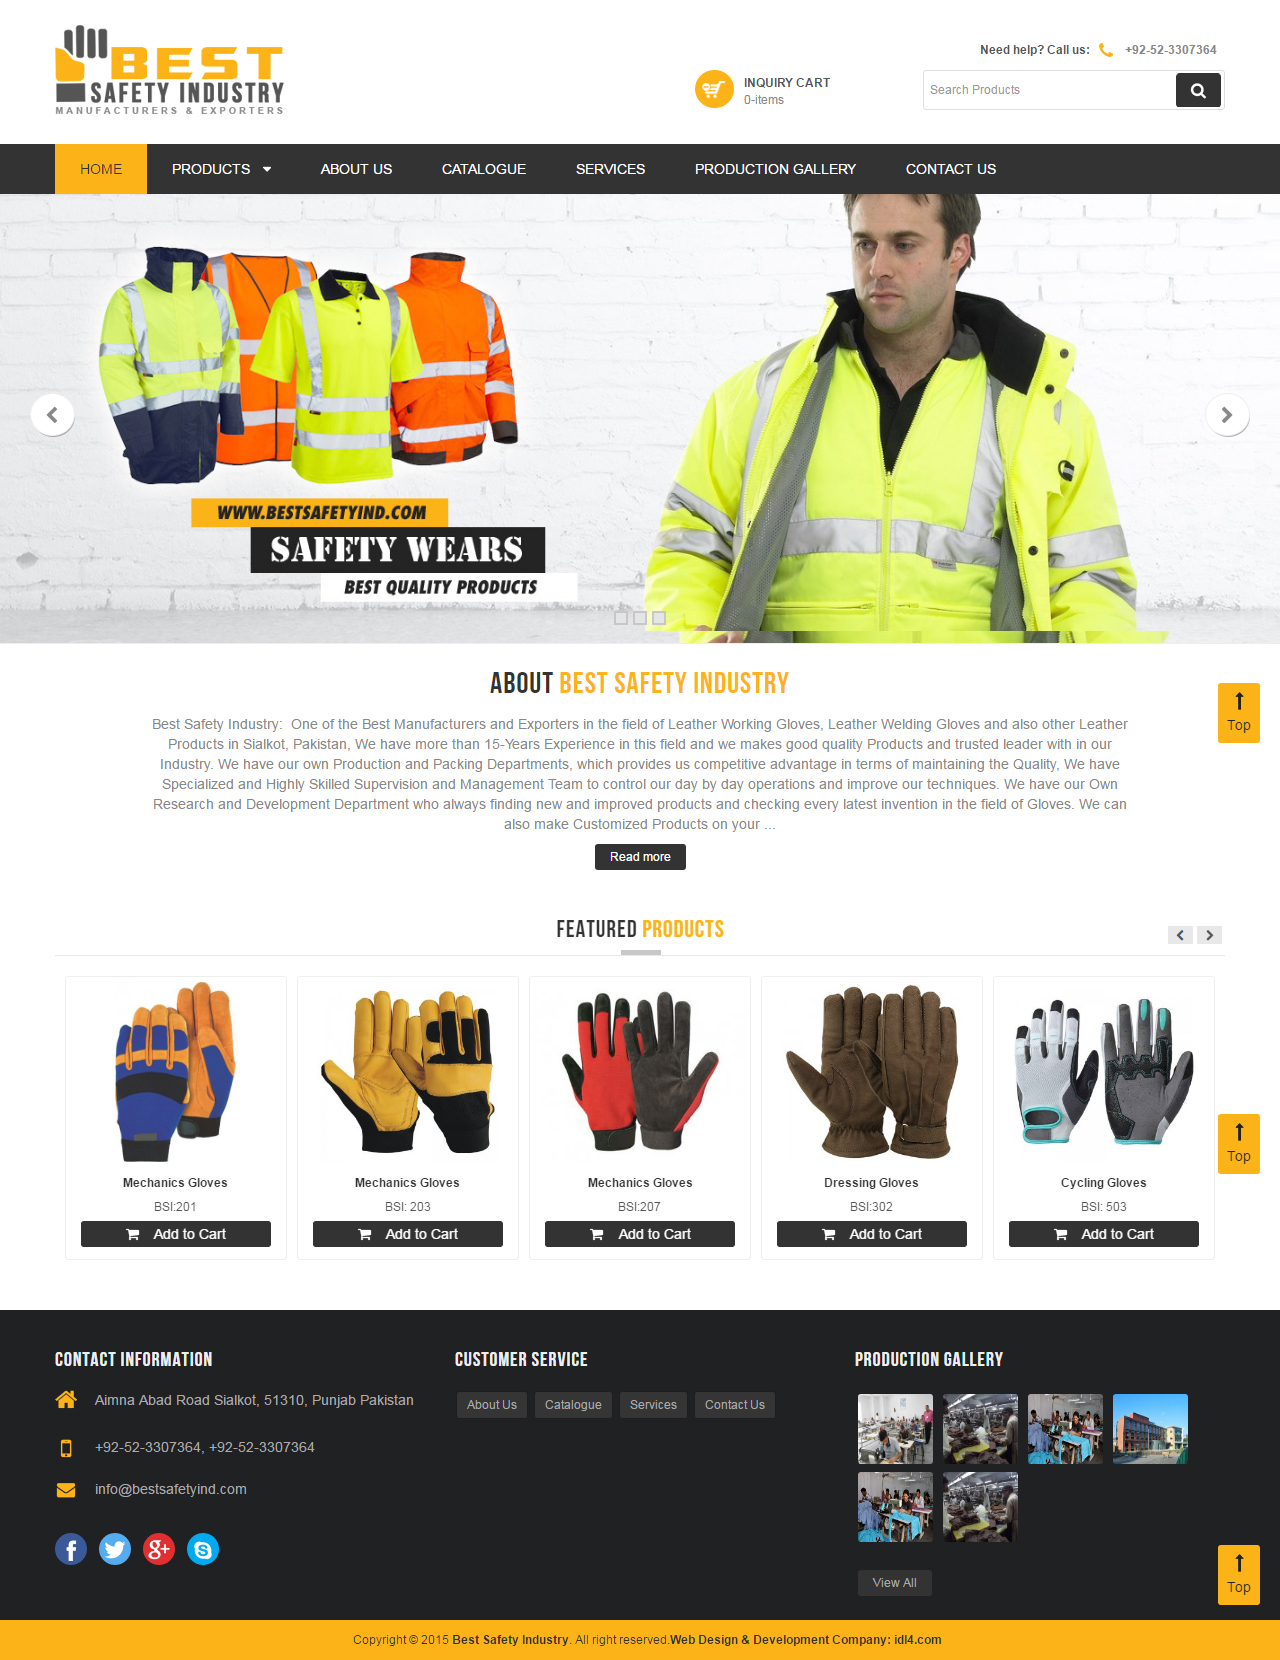 Best Safety Industry